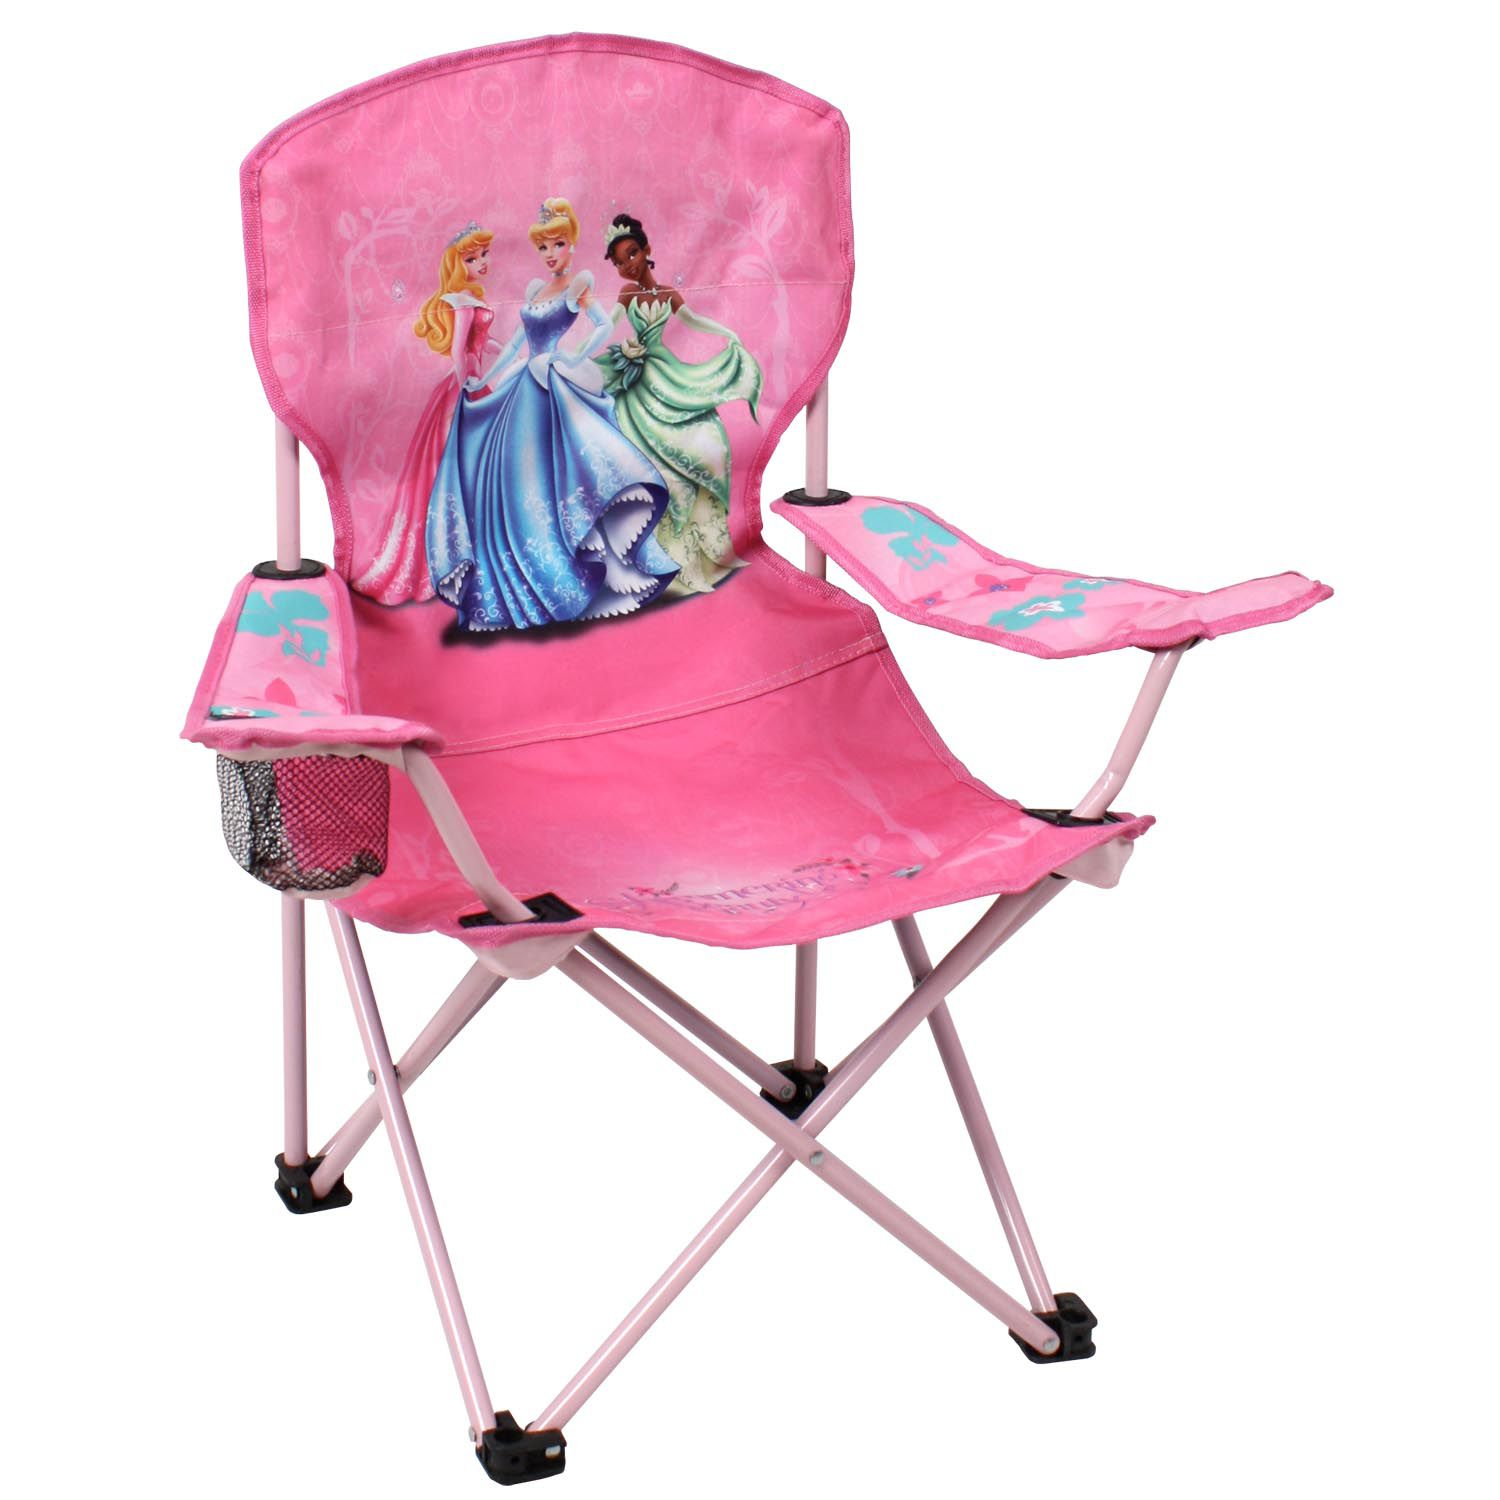 This Princess Folding Chair (kids) Is Also The Same Price!